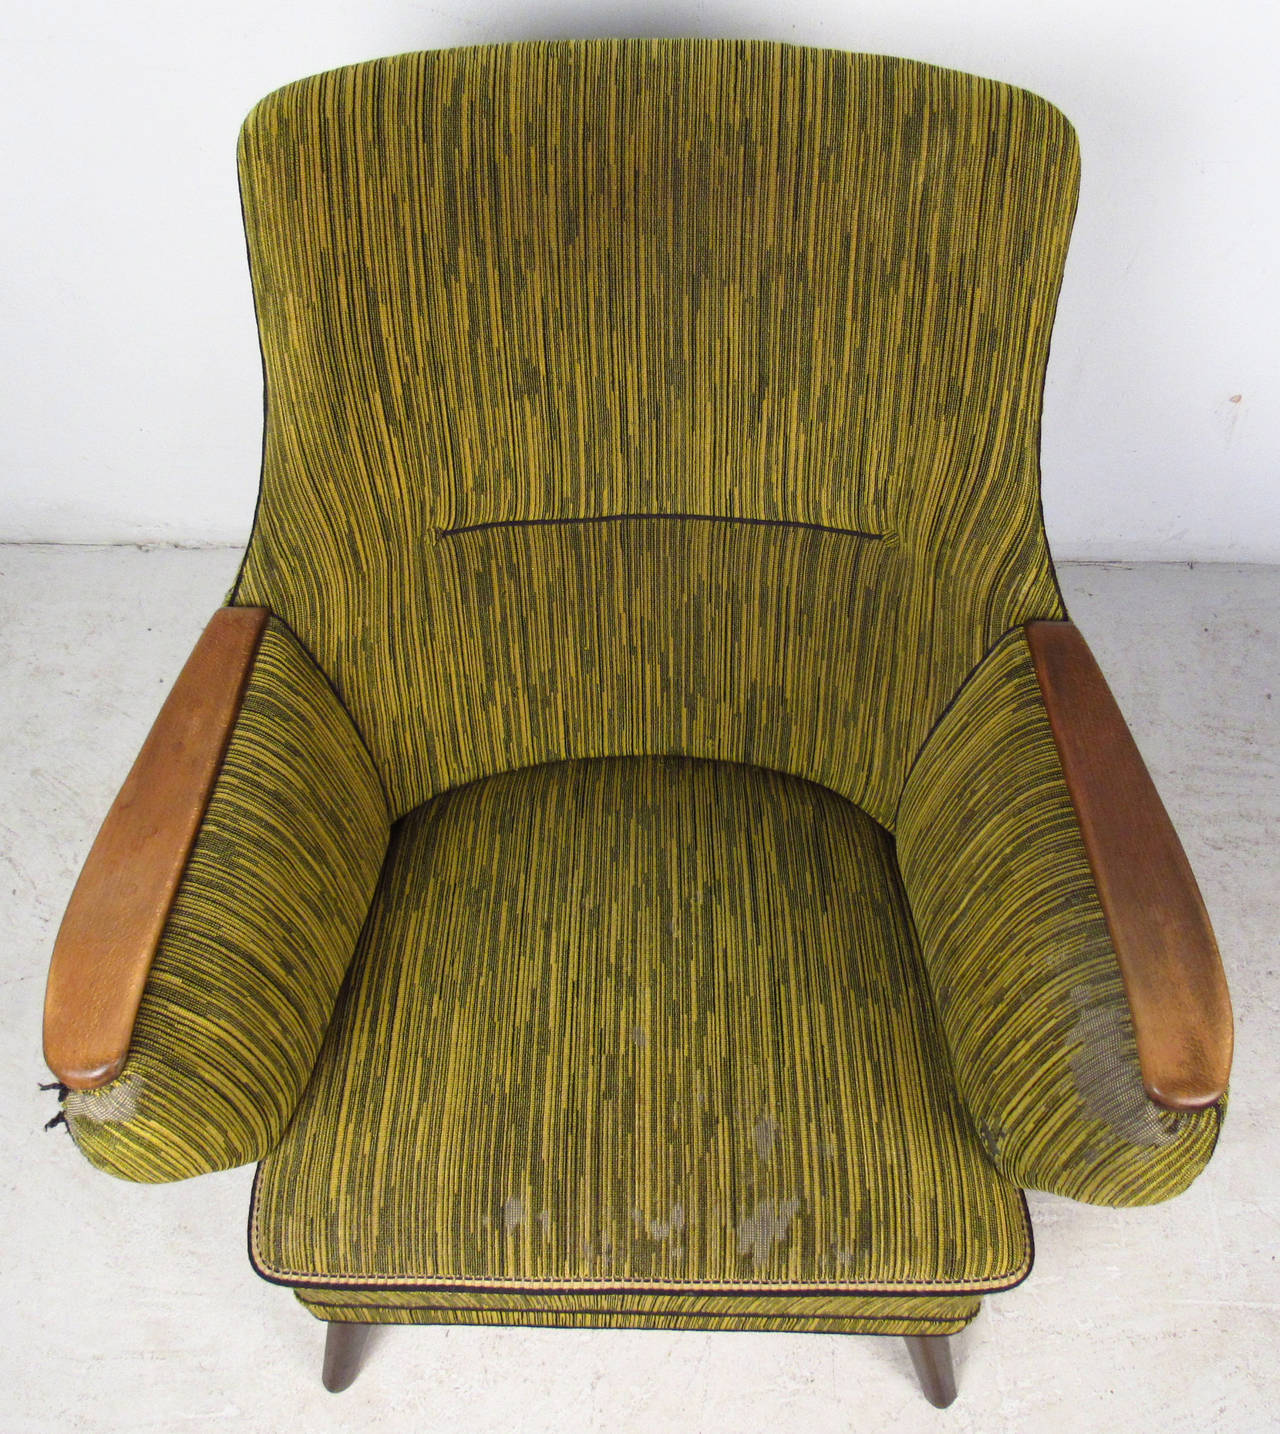 Midcentury Mogens Lassen Style Lounge Chair For Sale 3